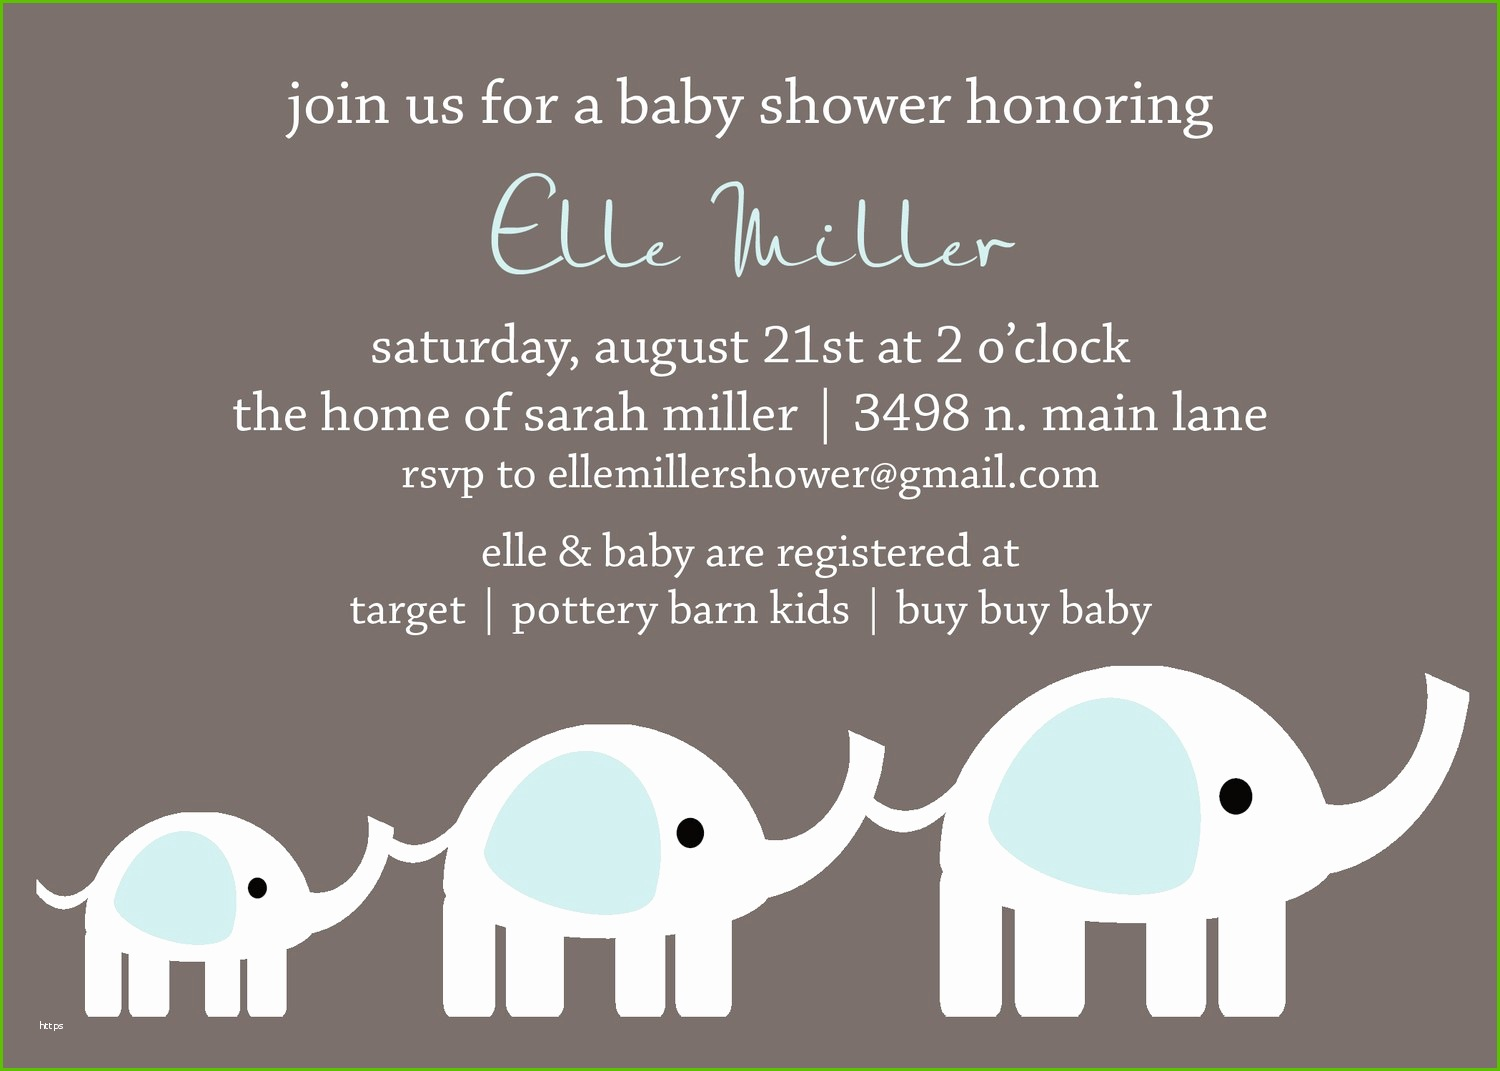 Full Size of Baby Shower:inspirational Elephant Baby Shower Invitations Photo Concepts Elephant Baby Shower Invitations And Noah's Ark Baby Shower With Baby Shower Theme Ideas Plus Baby Shower Messages Together With Baby Shower Favor Ideas As Well As Unique Baby Shower Gifts